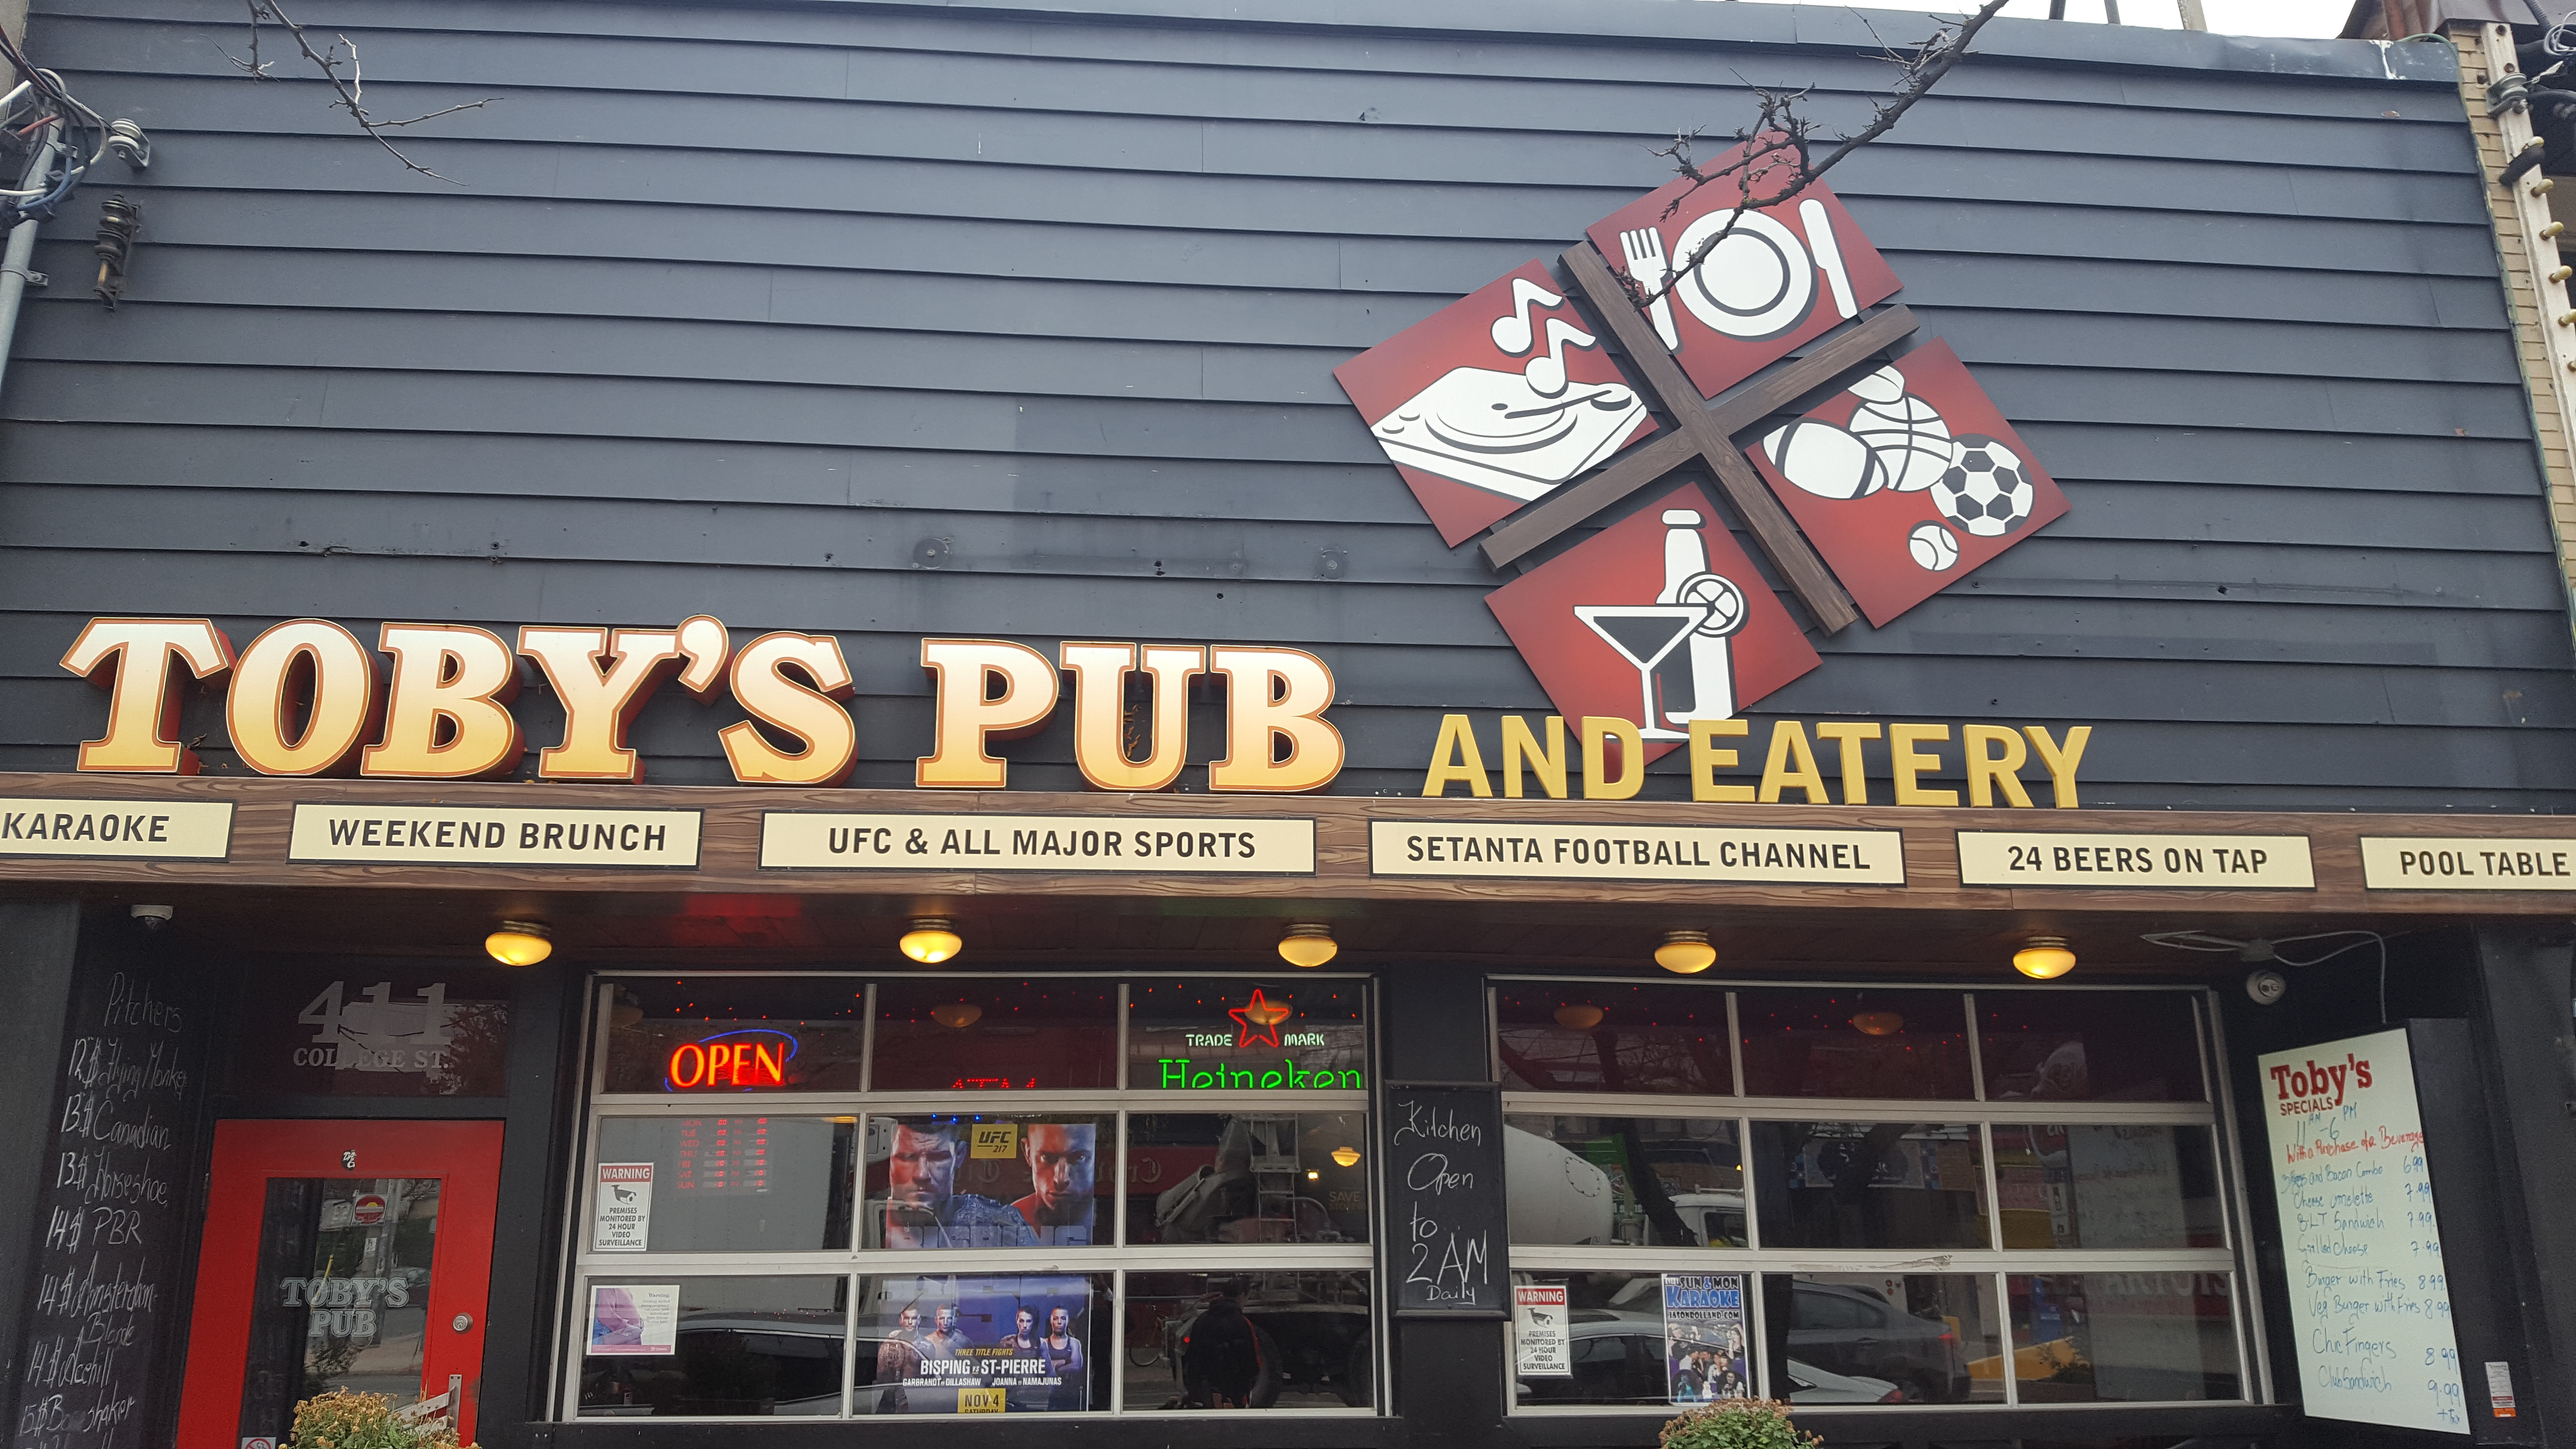 Toby's Pub & Eatery